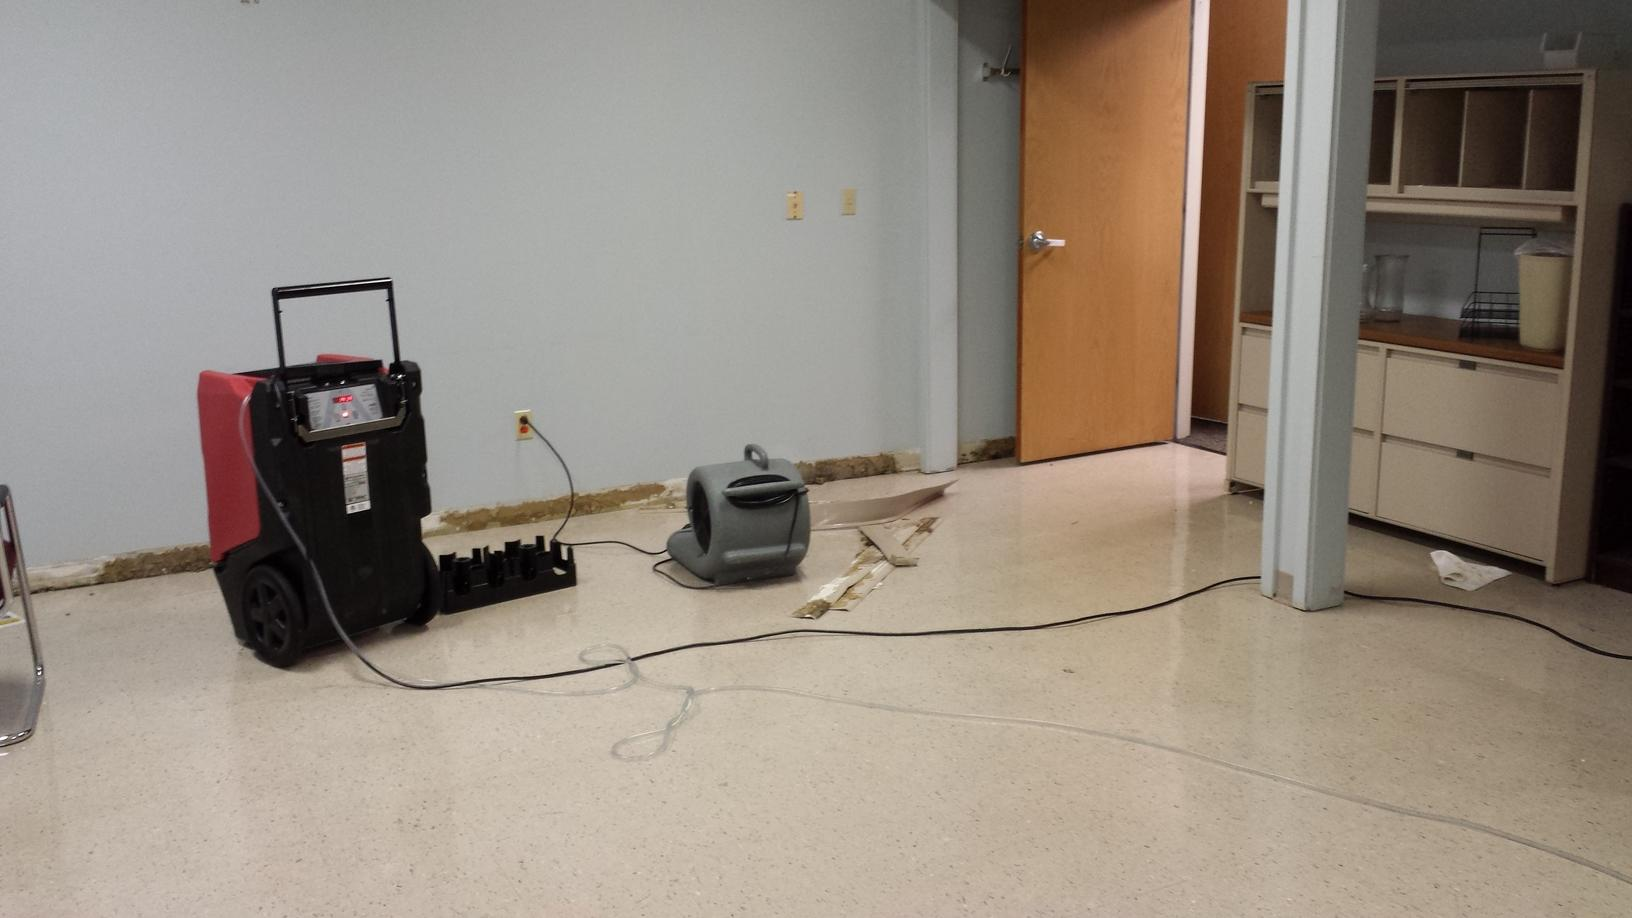 Hospital water damage emergency service in Independence, OH - Before Photo